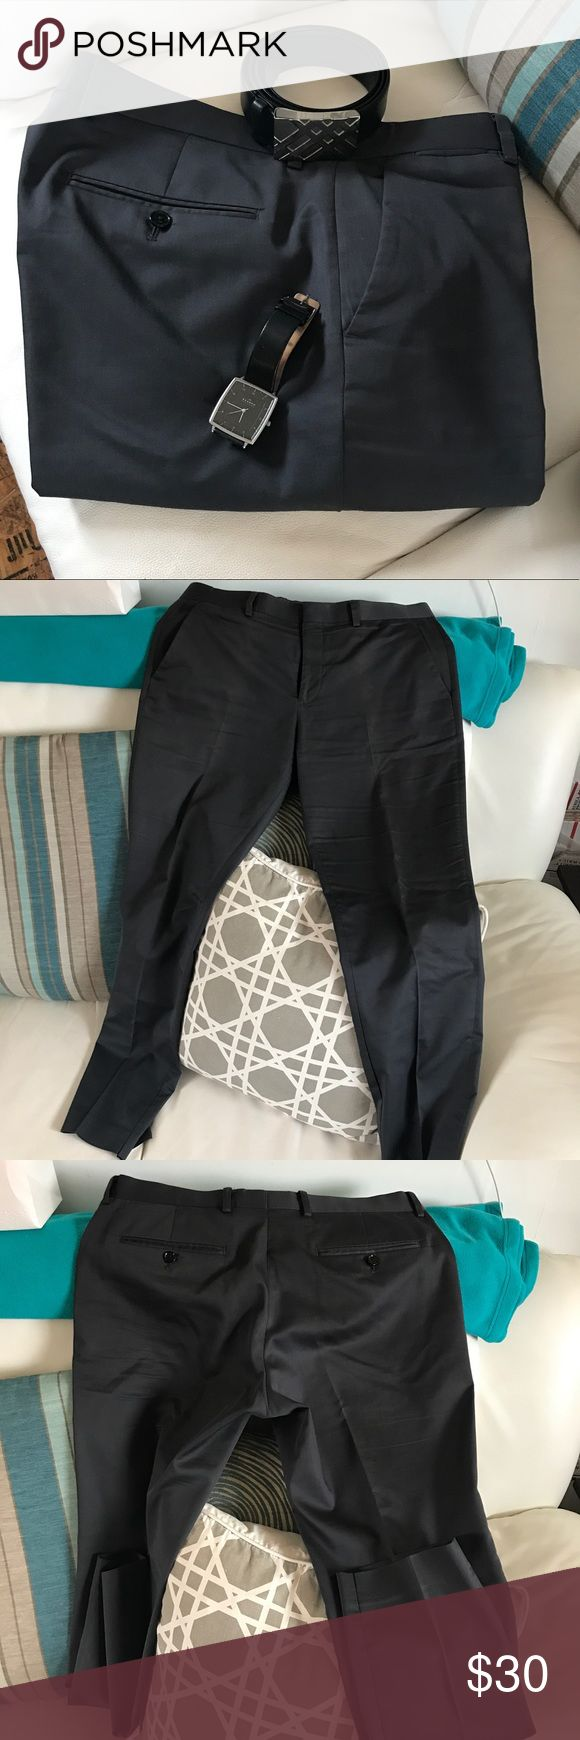 Express photographer pants Express photographer charcoal gray dress pants in really good condition, the only thing is that there is a pinkish line down the front at the crisp line. Not sure why this happened, my guess from the iron heat at the dry cleaners. Express Pants Dress